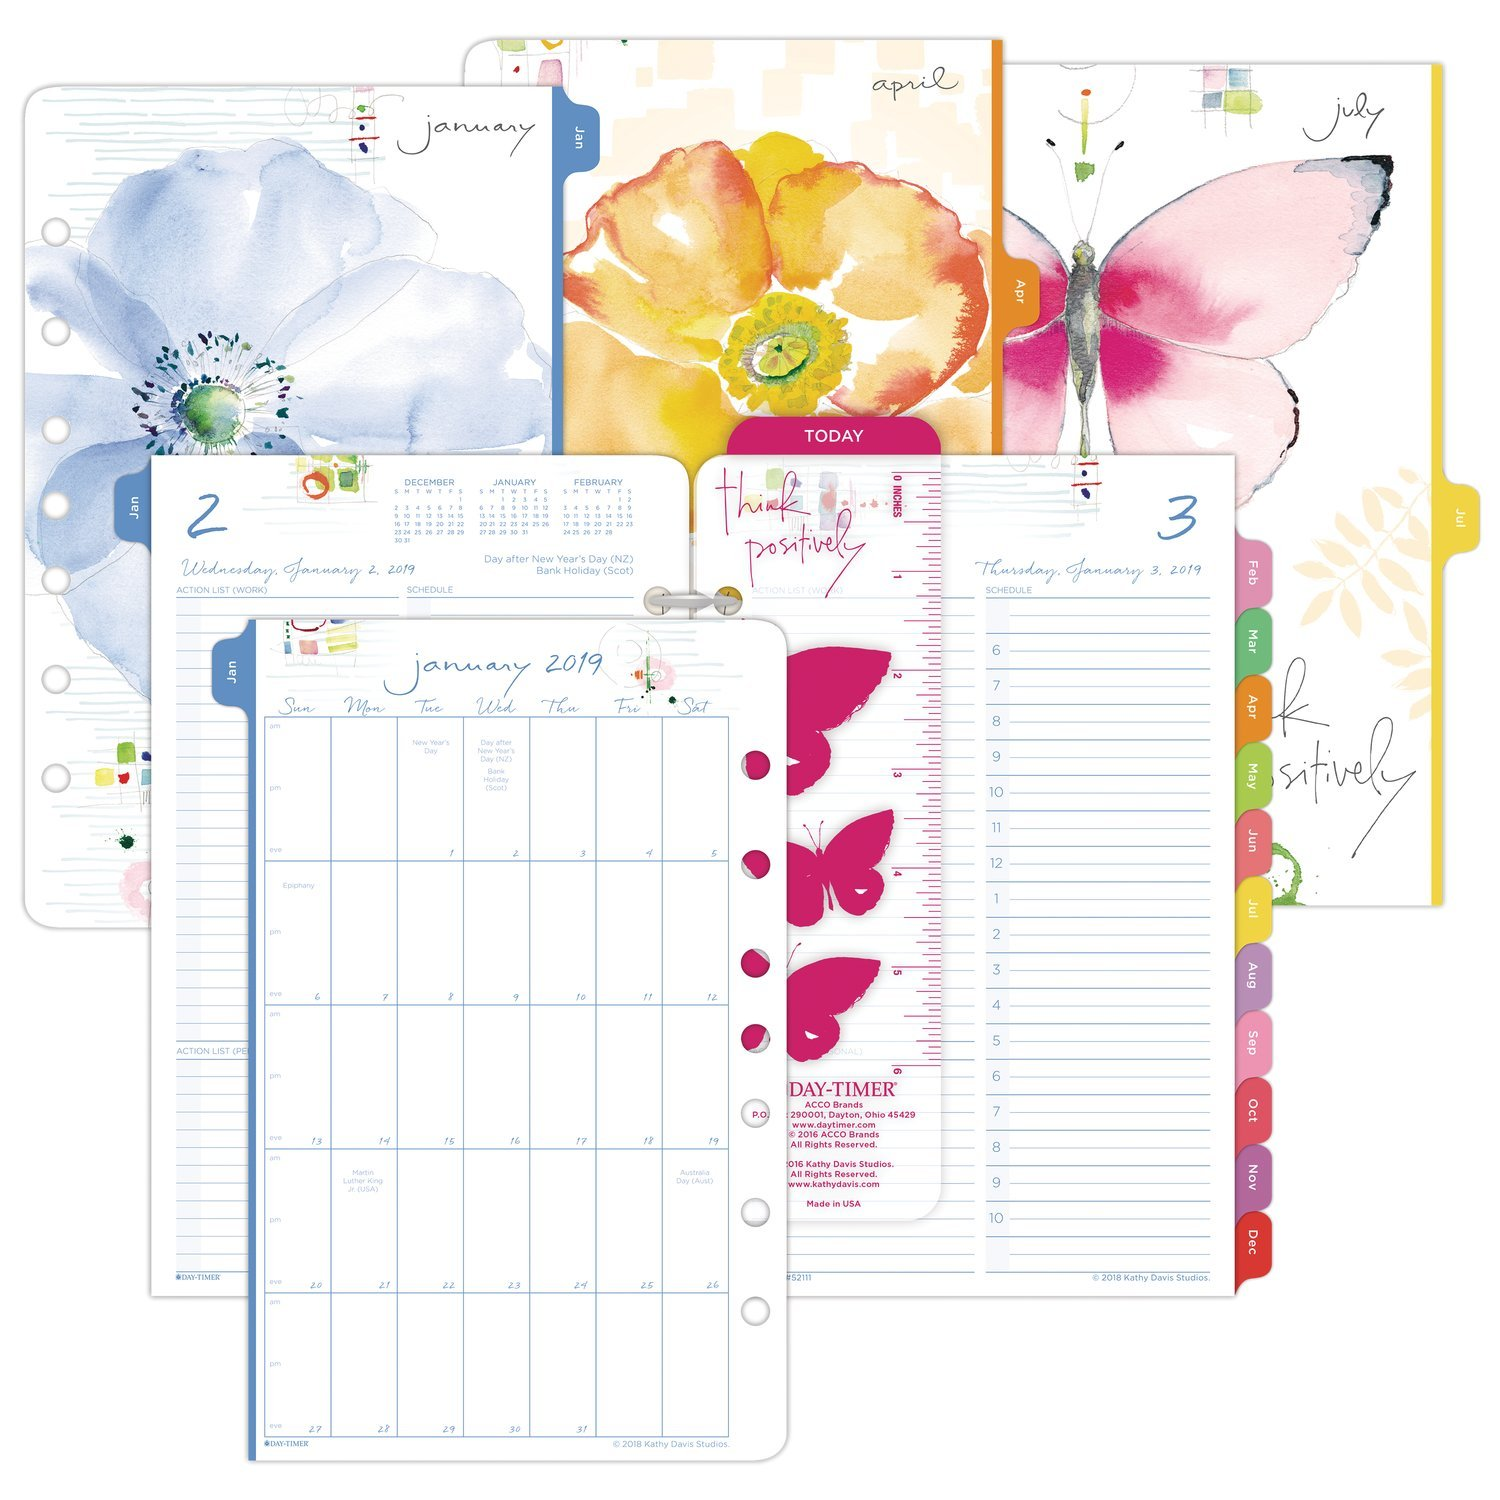 kathy davis for day timer 2019 planner appointment book refill 5 1